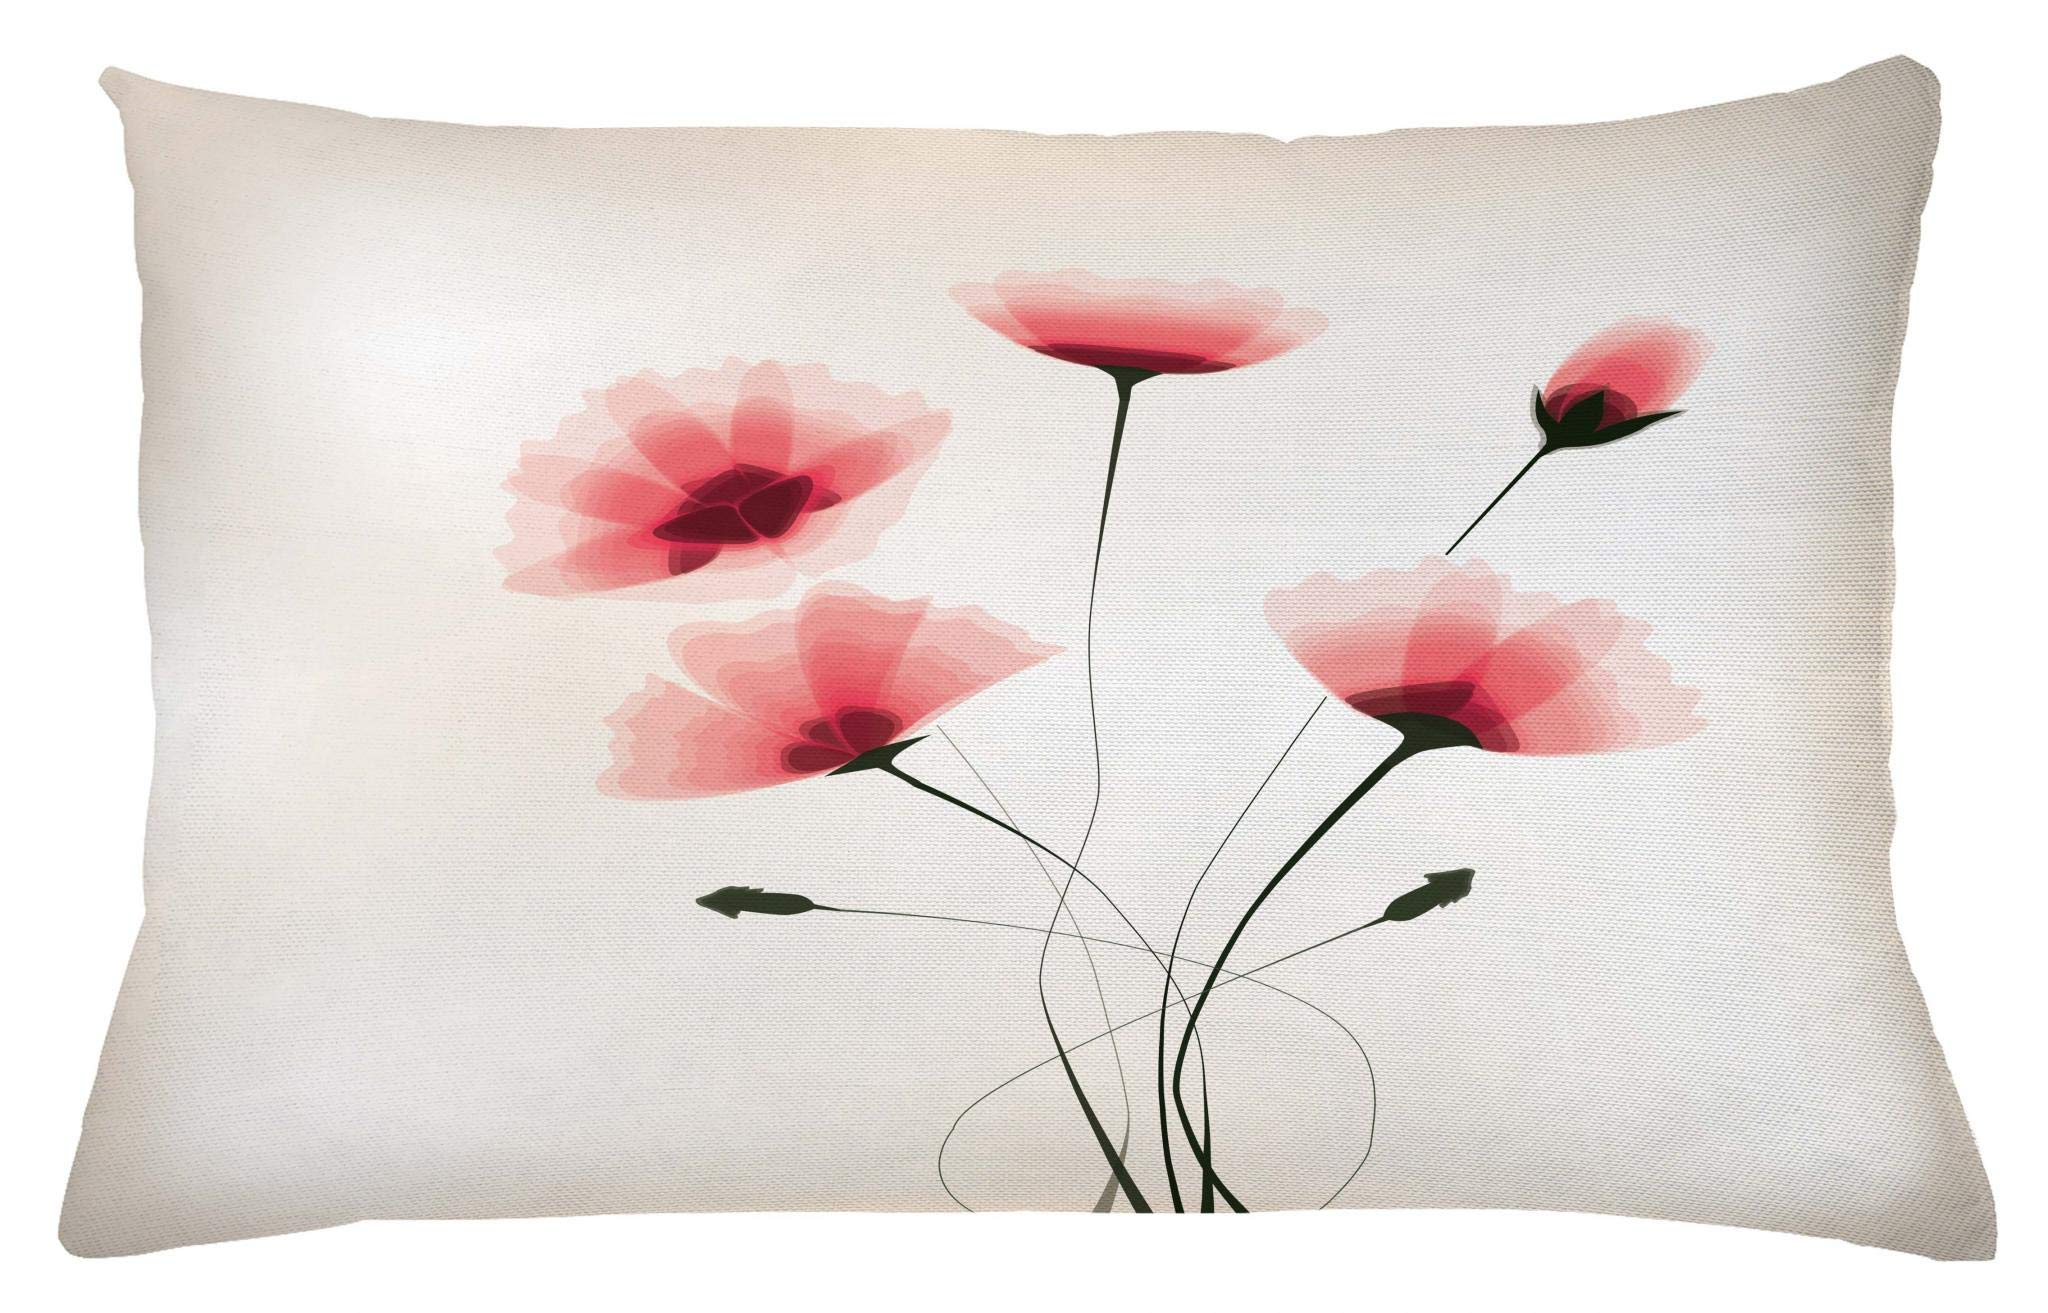 Ambesonne Abstract Throw Pillow Cushion Cover, Pure Romantic Cool Simple Natural Flower with Blossoms Artwork Print, Decorative Accent Pillow Case, 26 W X 16 L Inches, Pink Green and White